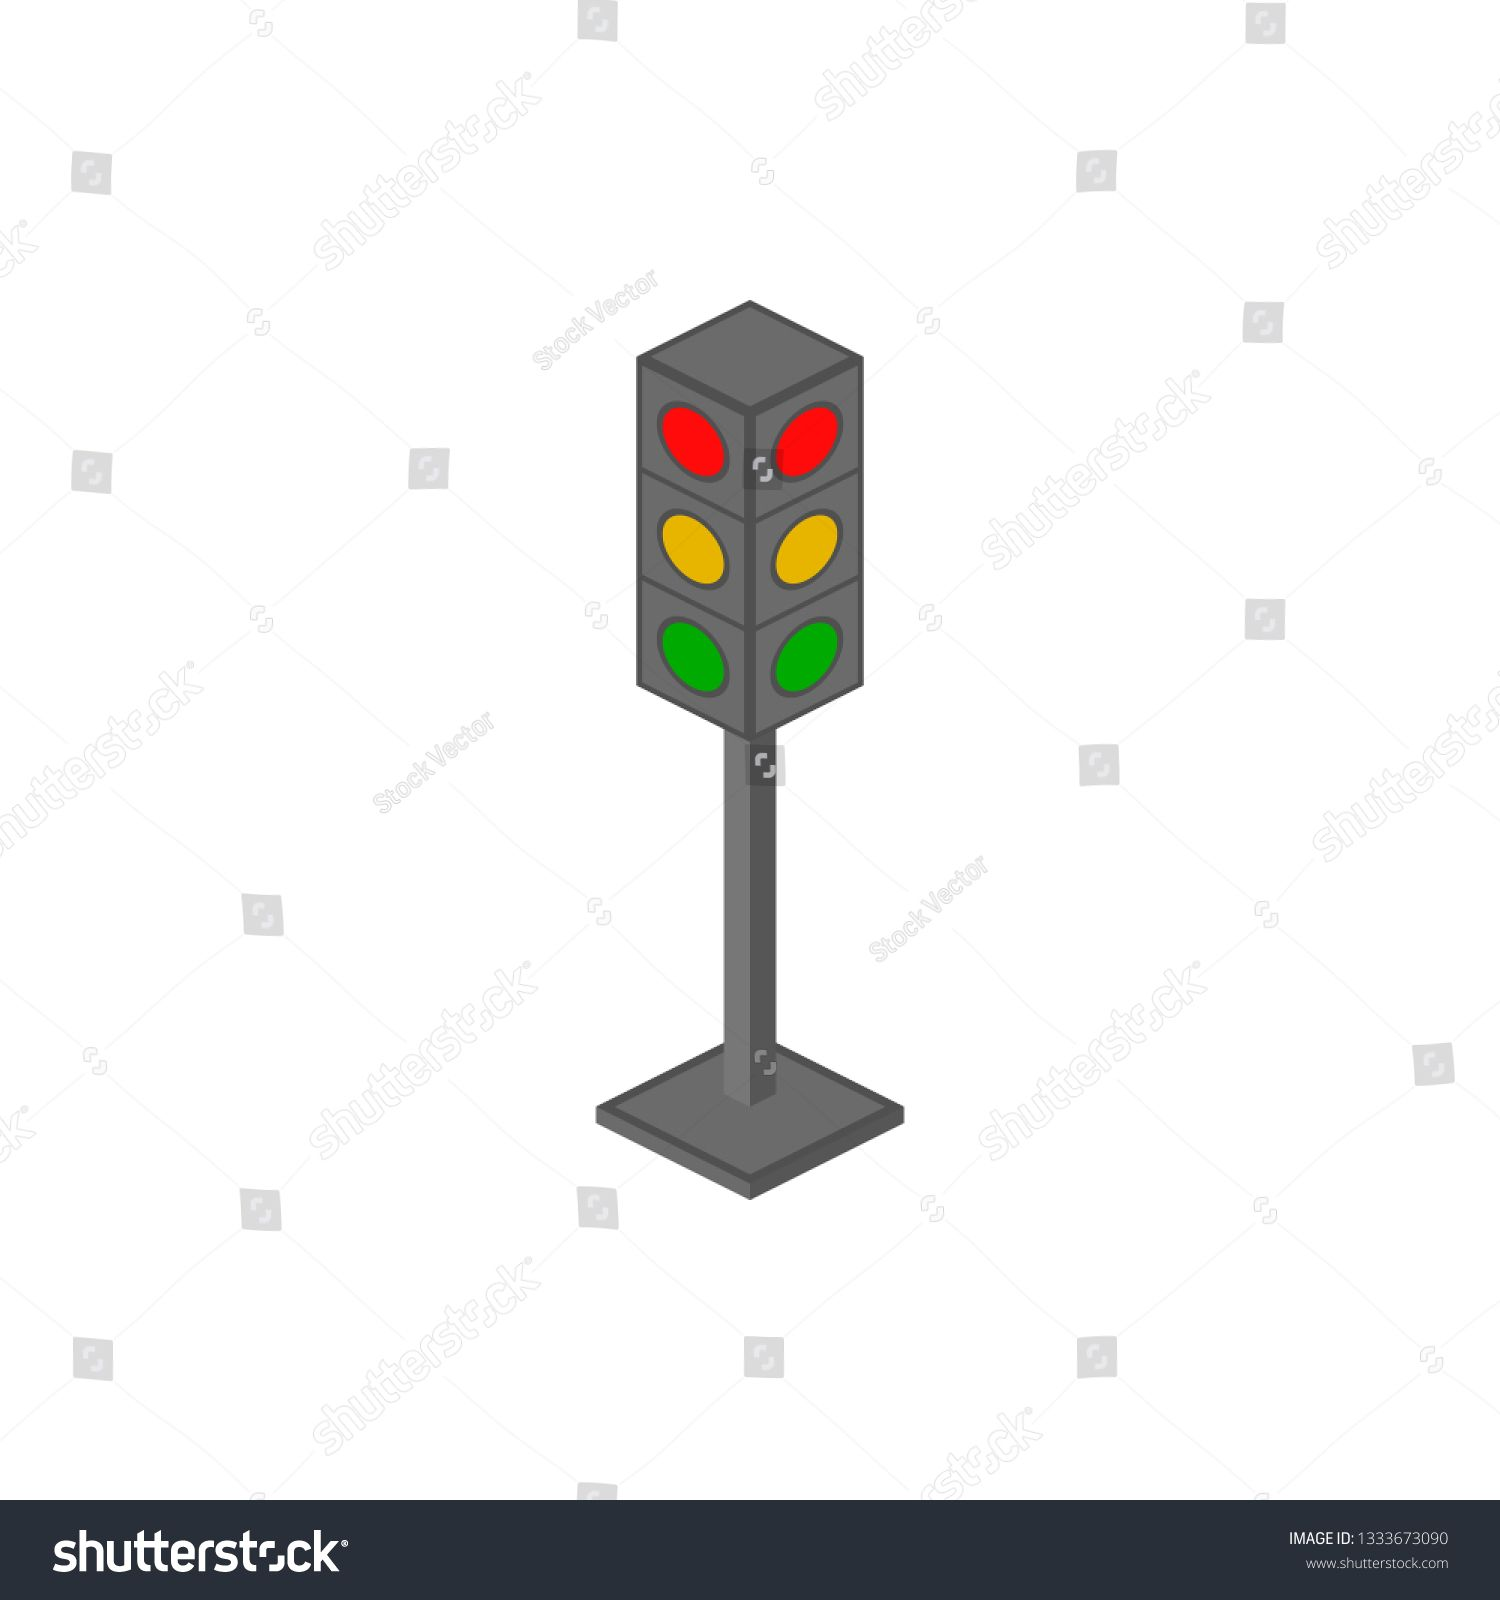 Traffic Lamps Isometric Icon Element Of Color Isometric Road Sign Icon Premium Quality Graphic Design Icon Signs An In 2020 Isometric Elements Of Color Traffic Lamp